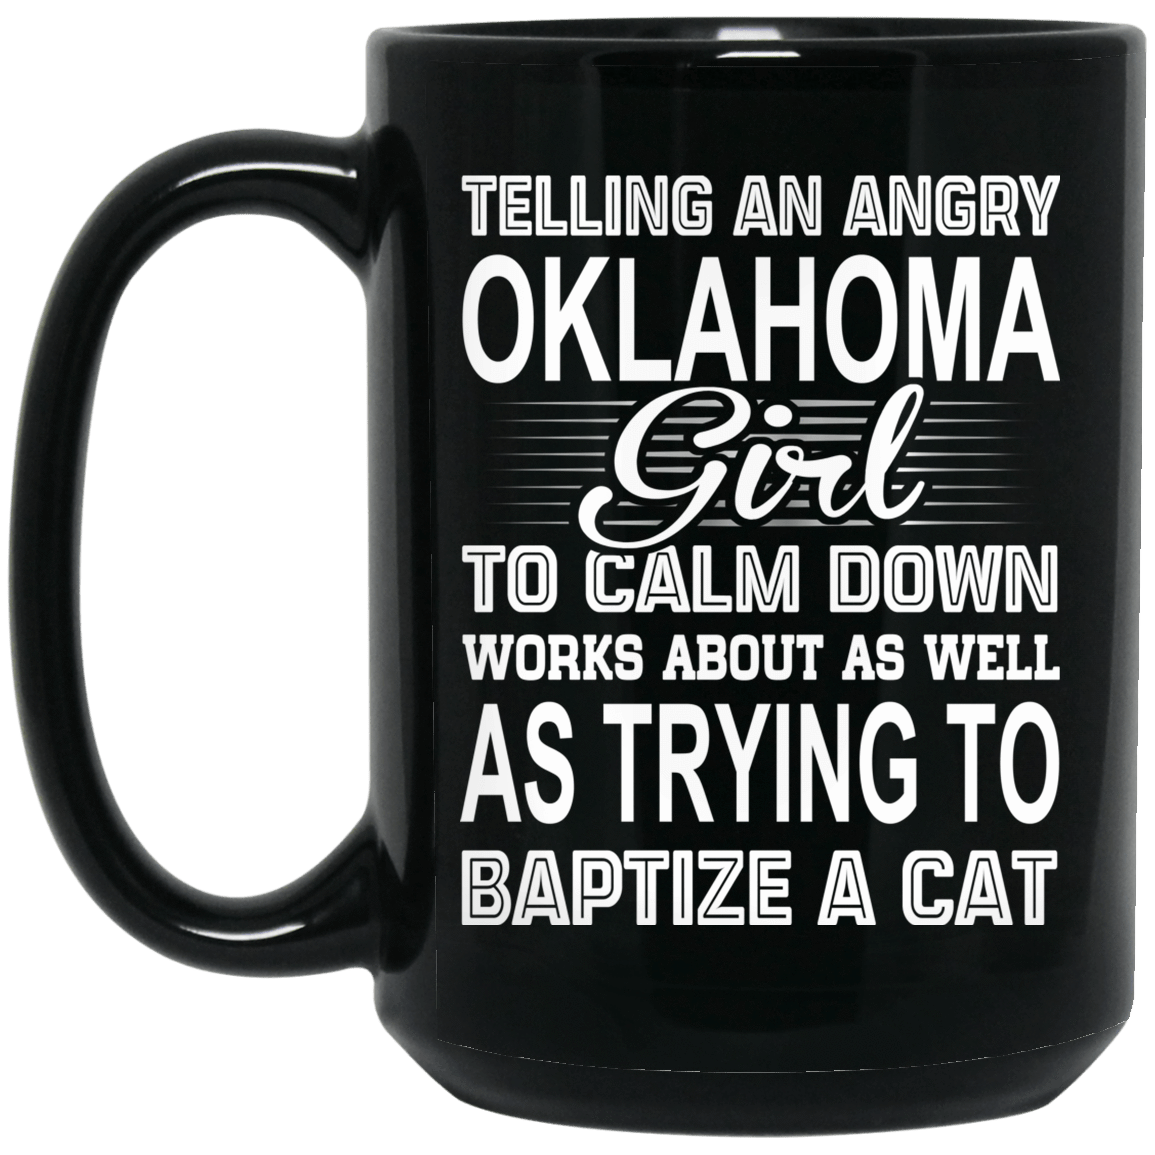 Telling An Angry Oklahoma Girl To Calm Down Works About As Well As Trying To Baptize A Cat Mug 1066-10182-76151933-49311 - Tee Ript